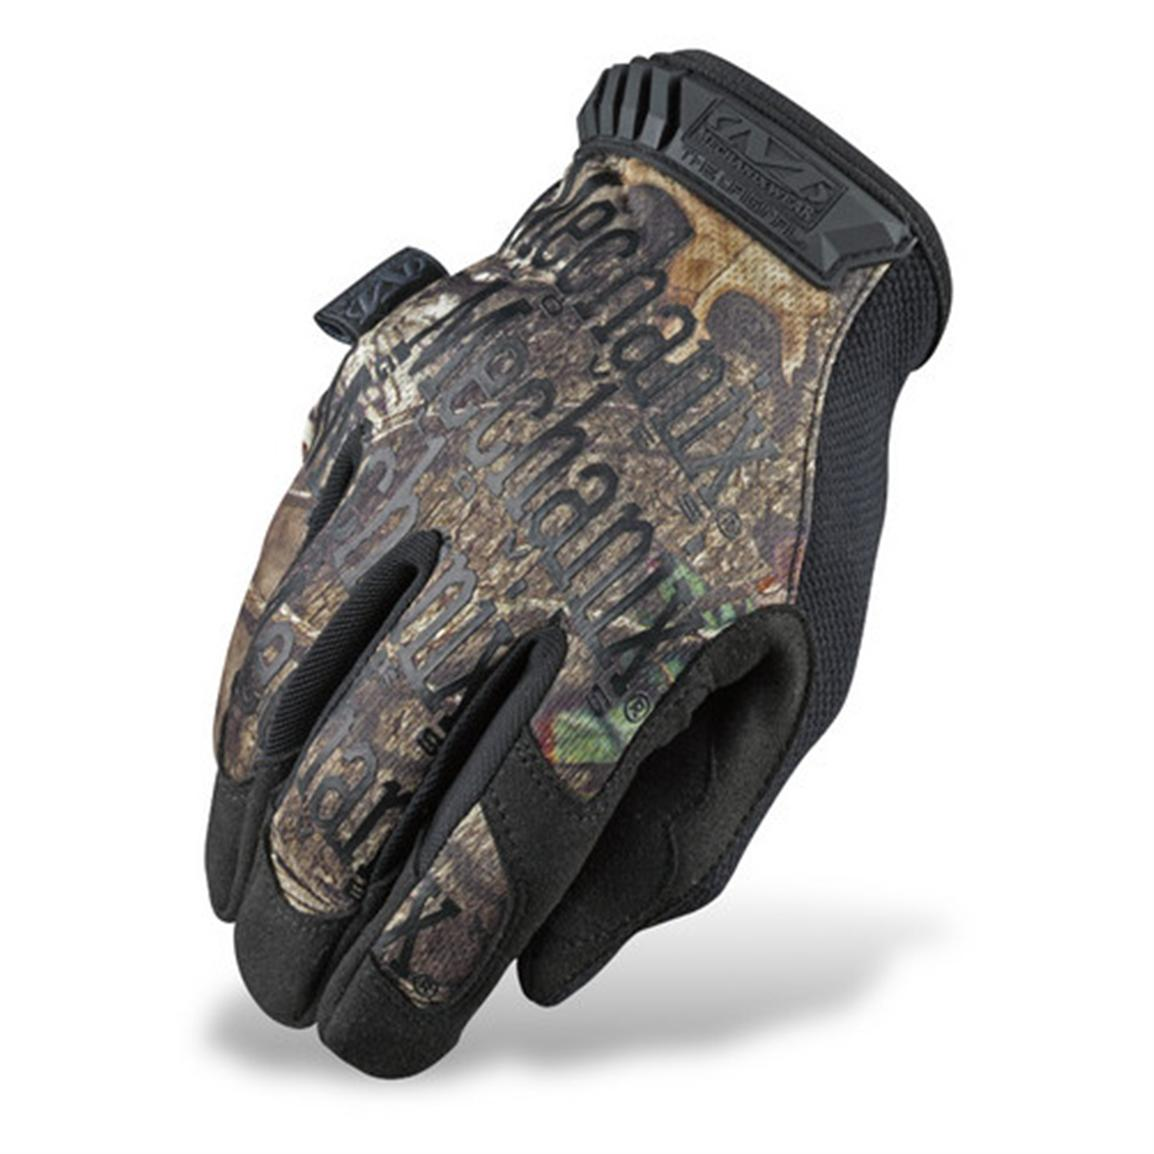 Mechanix Wear® Original® Mossy Oak Glove